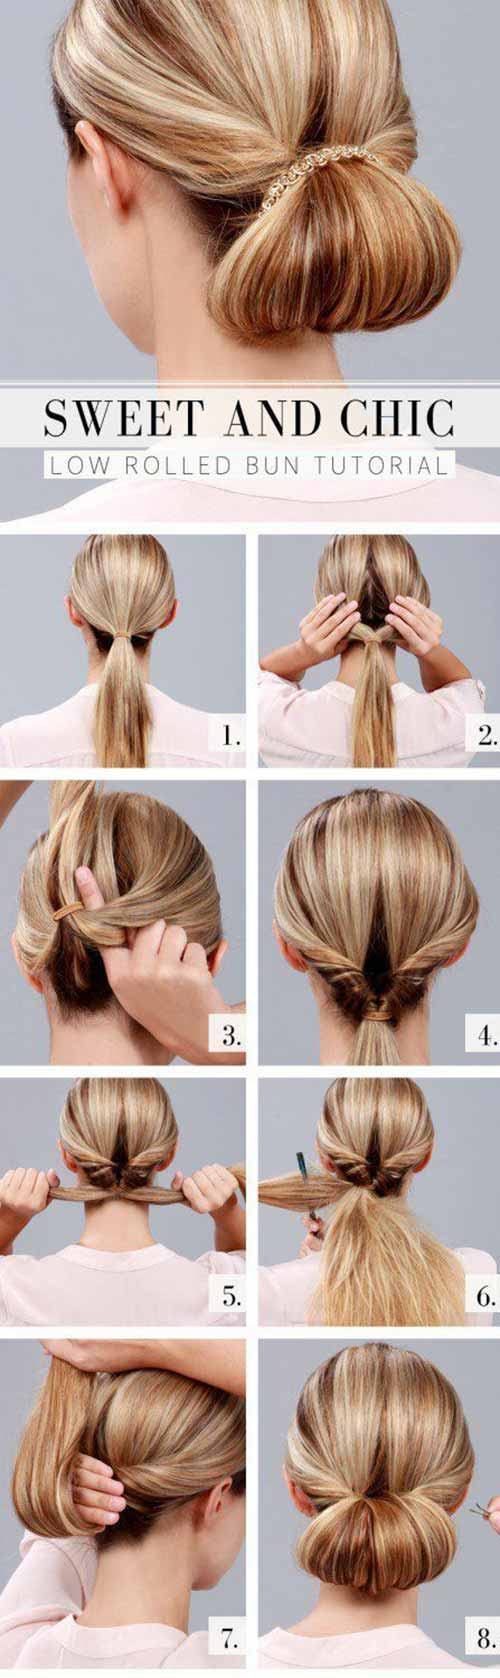 The Chic Bun